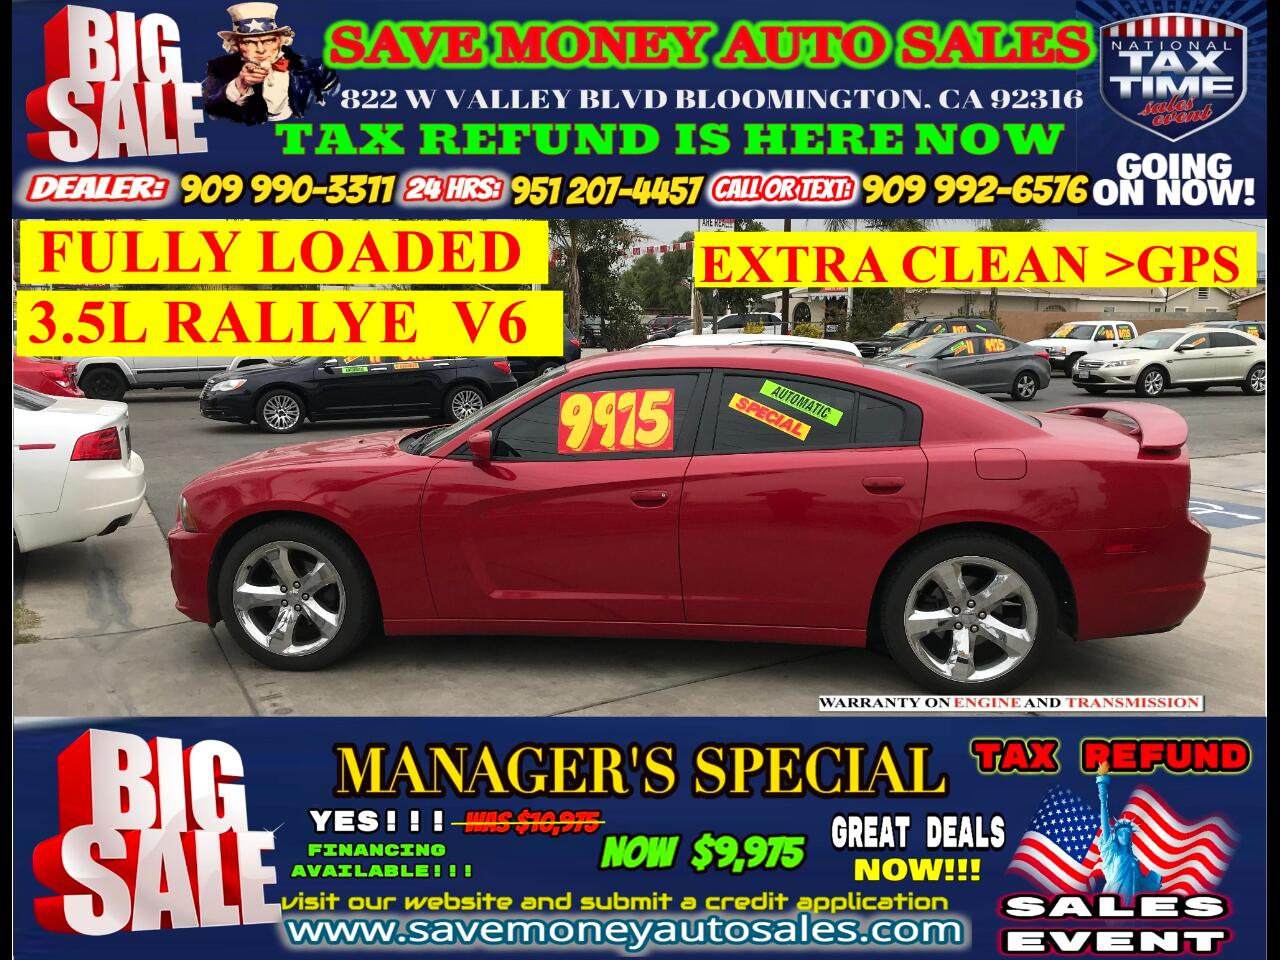 2011 Dodge Charger SE> FULLY LOADED > EXTRA CLEAN> GPS